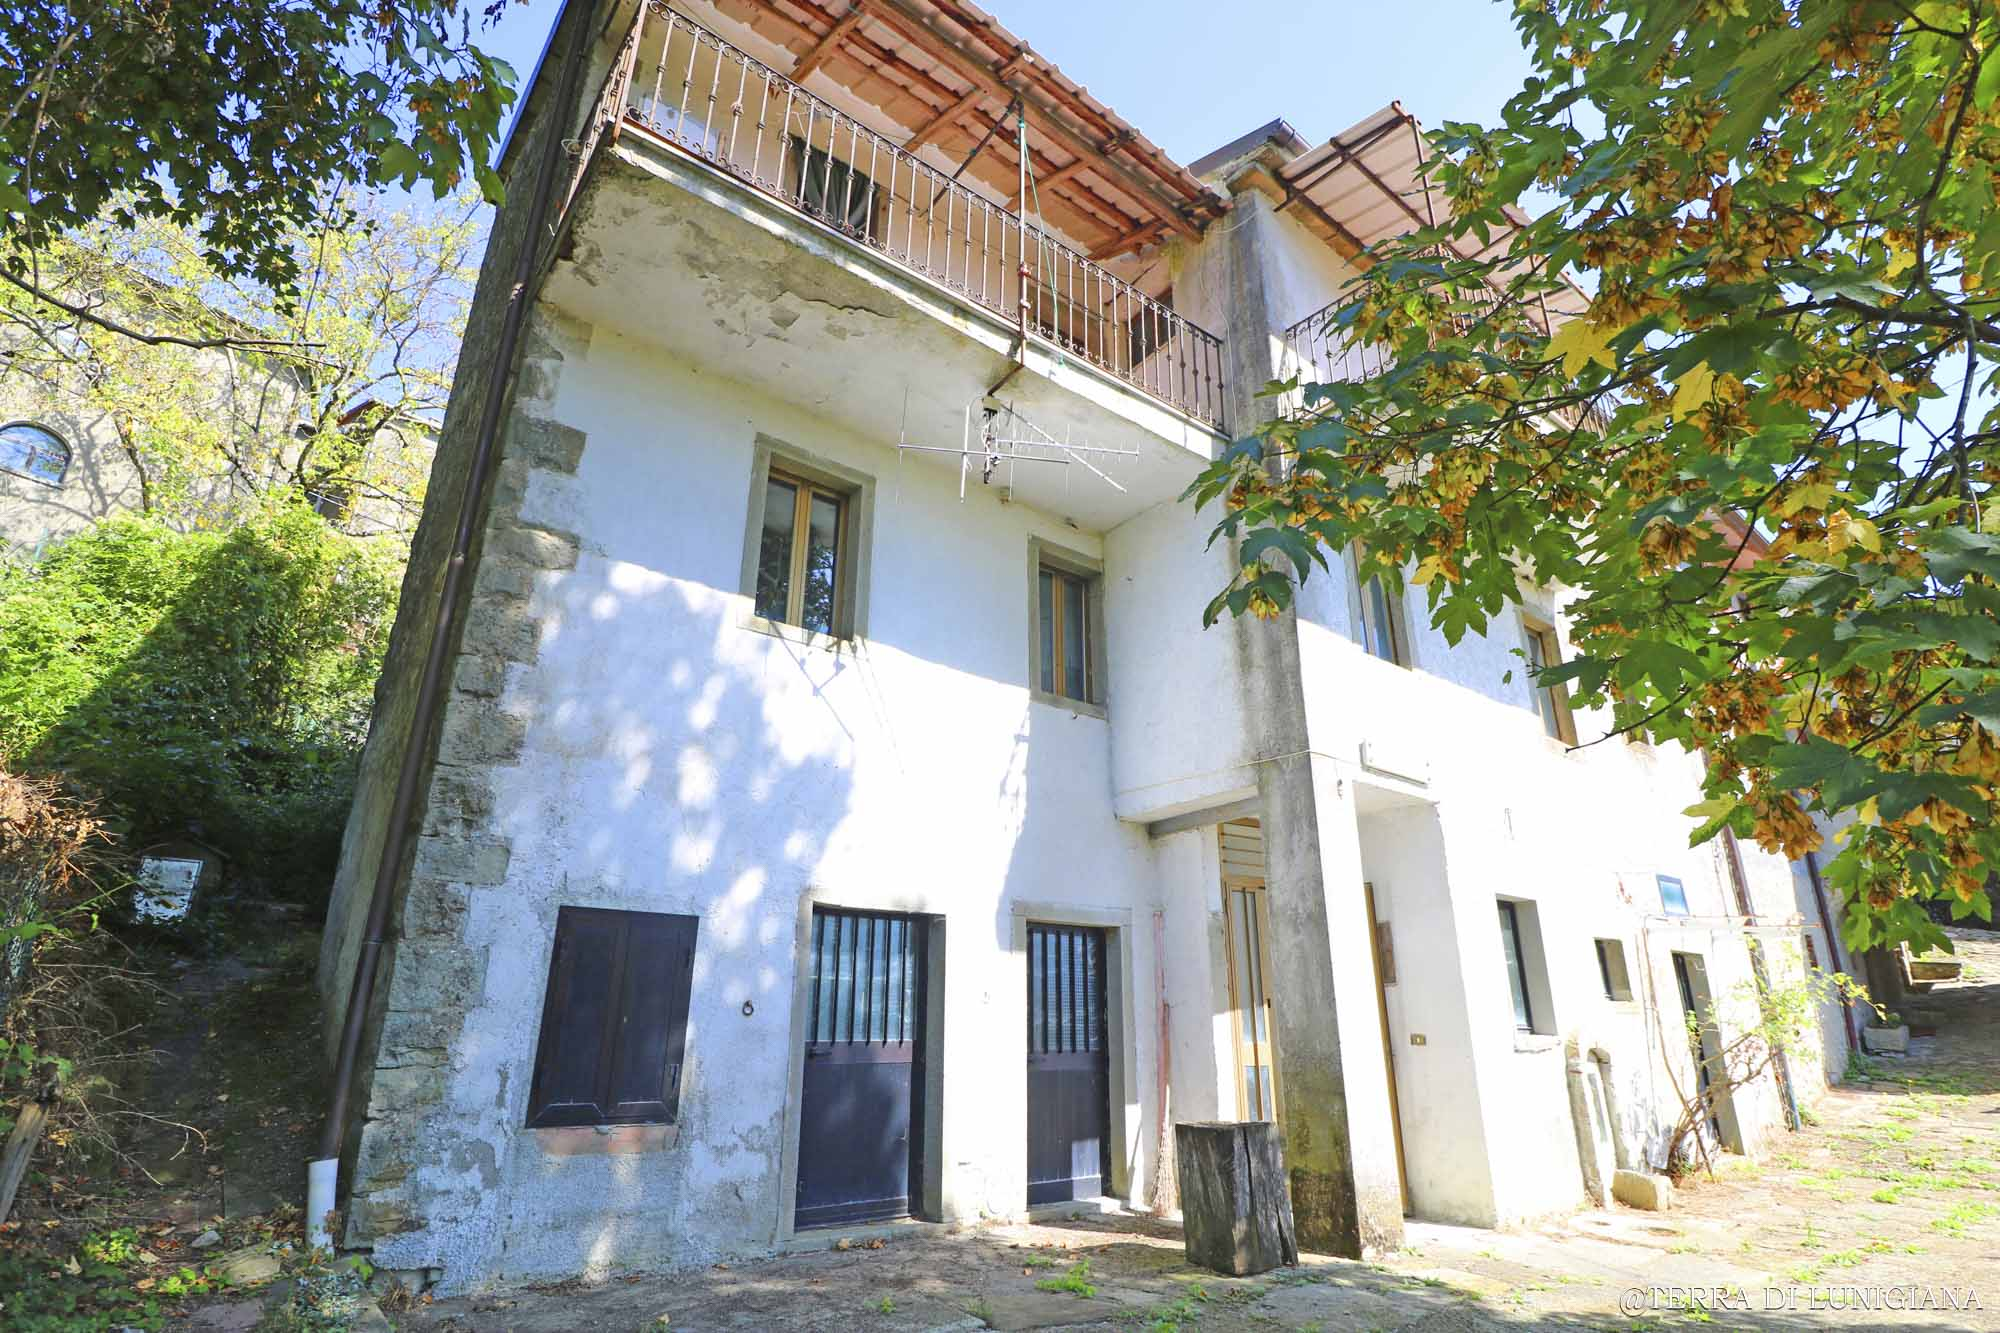 LA BIETOLA – Large Country House with View